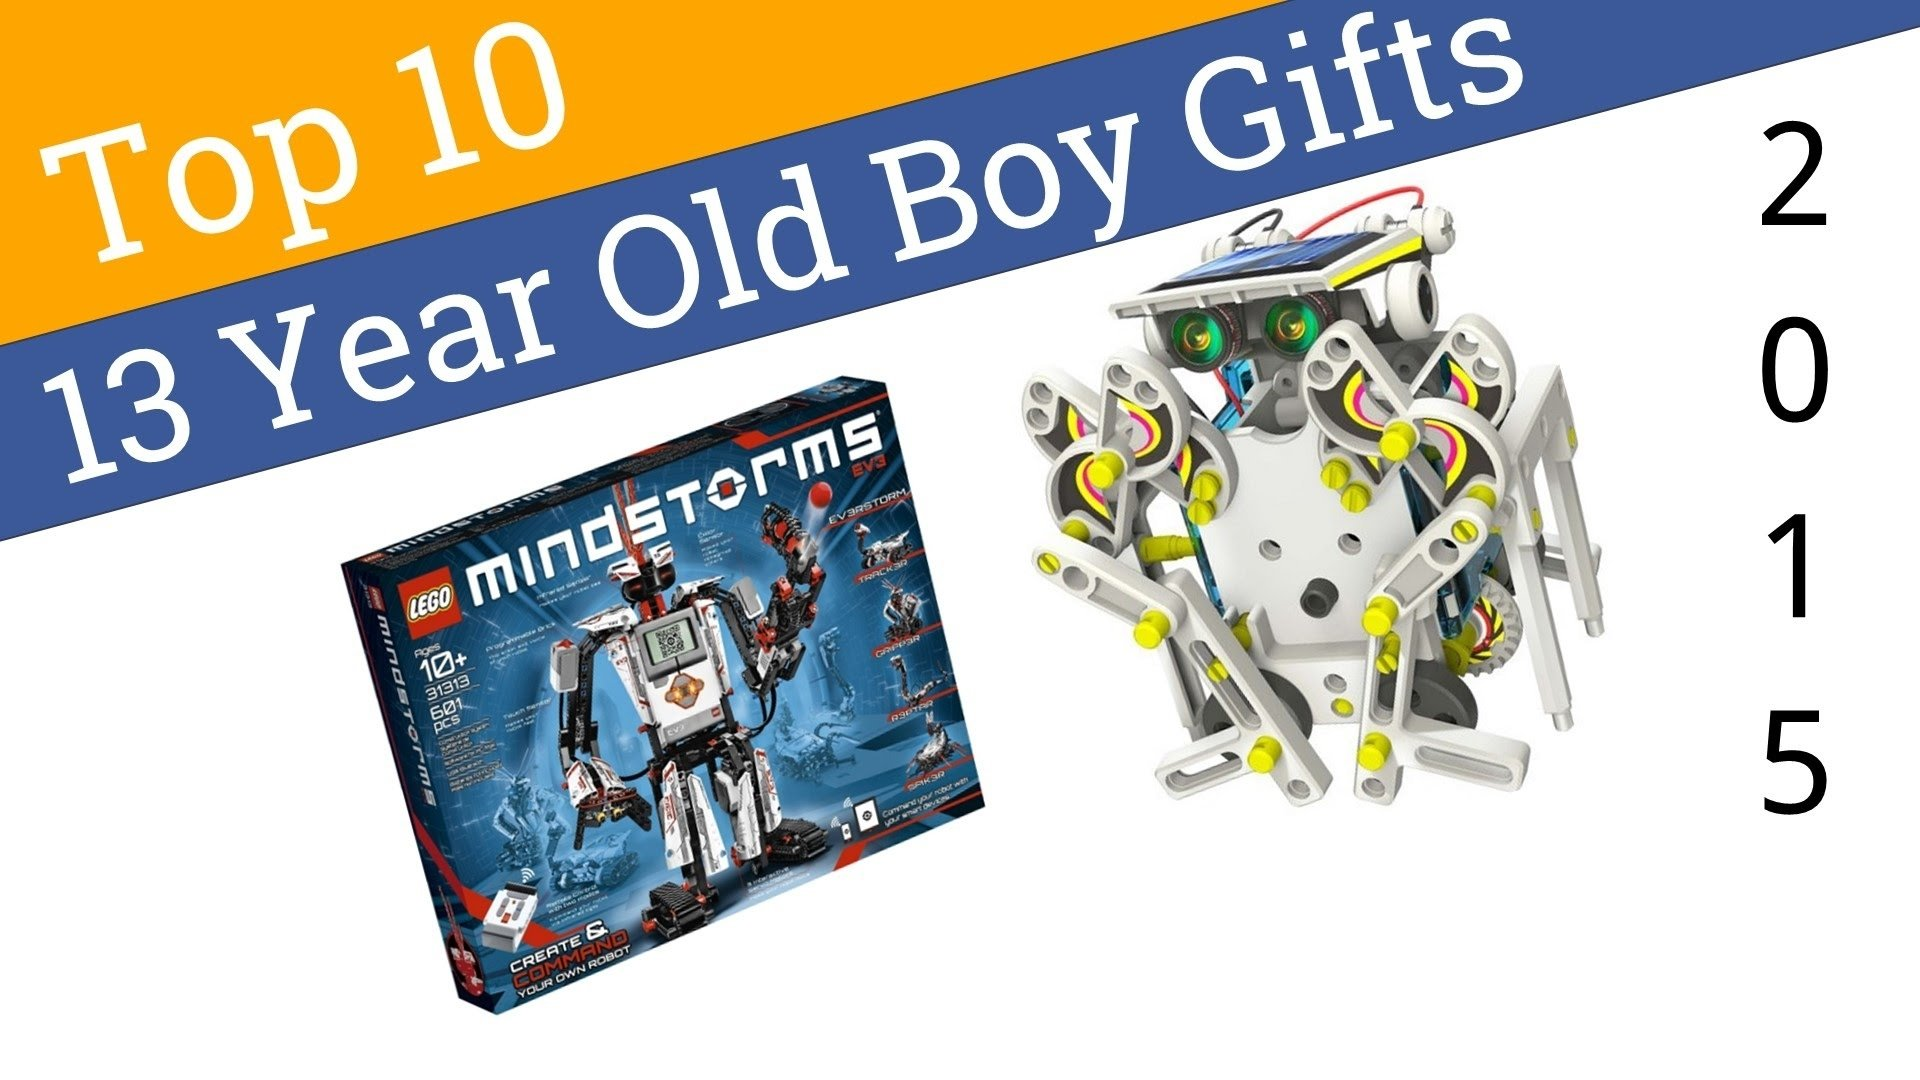 Christmas Ideas 13 Year Old Boy ✓ The Christmas Gifts